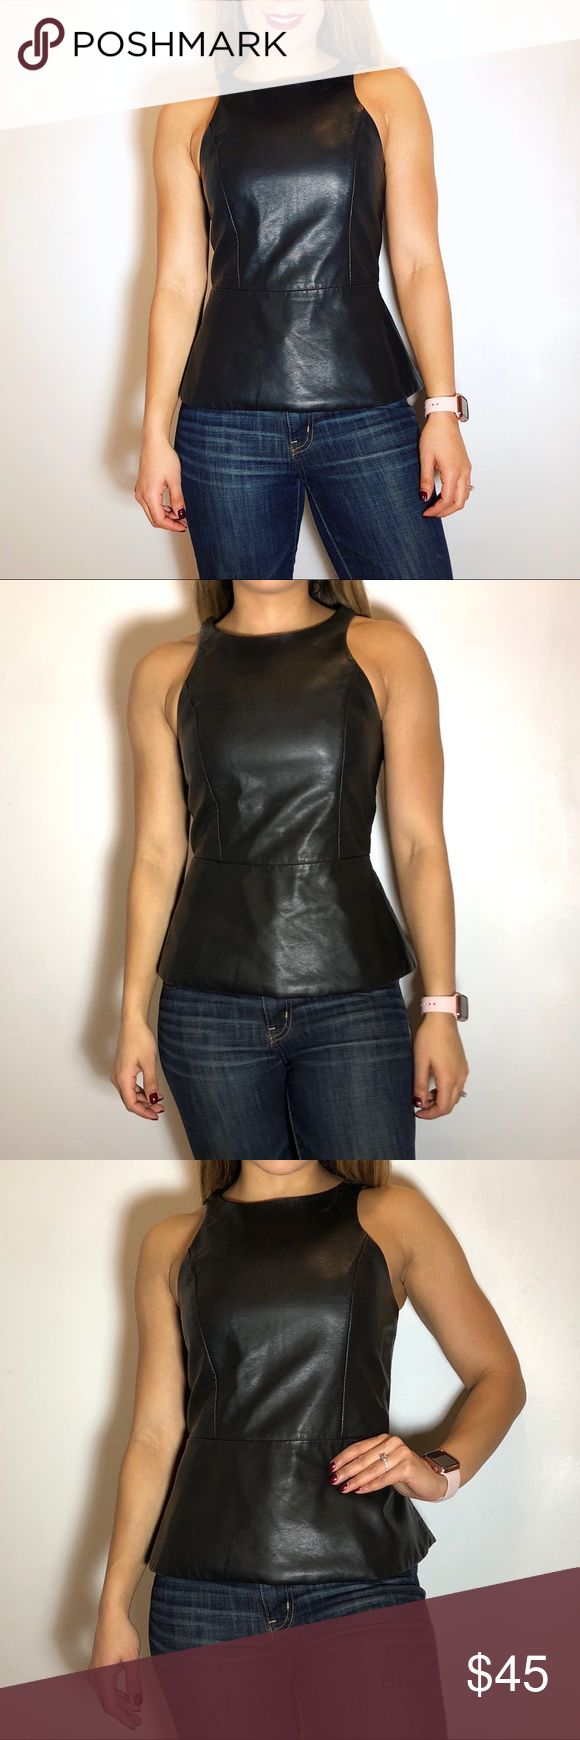 Express Faux Leather Peplum Top Express Faux Leather Peplum Top. -Size S. -Back zip. -Faux Leather. -Excellent condition!  NO Trades. Please make all offers through offer button. Express Tops